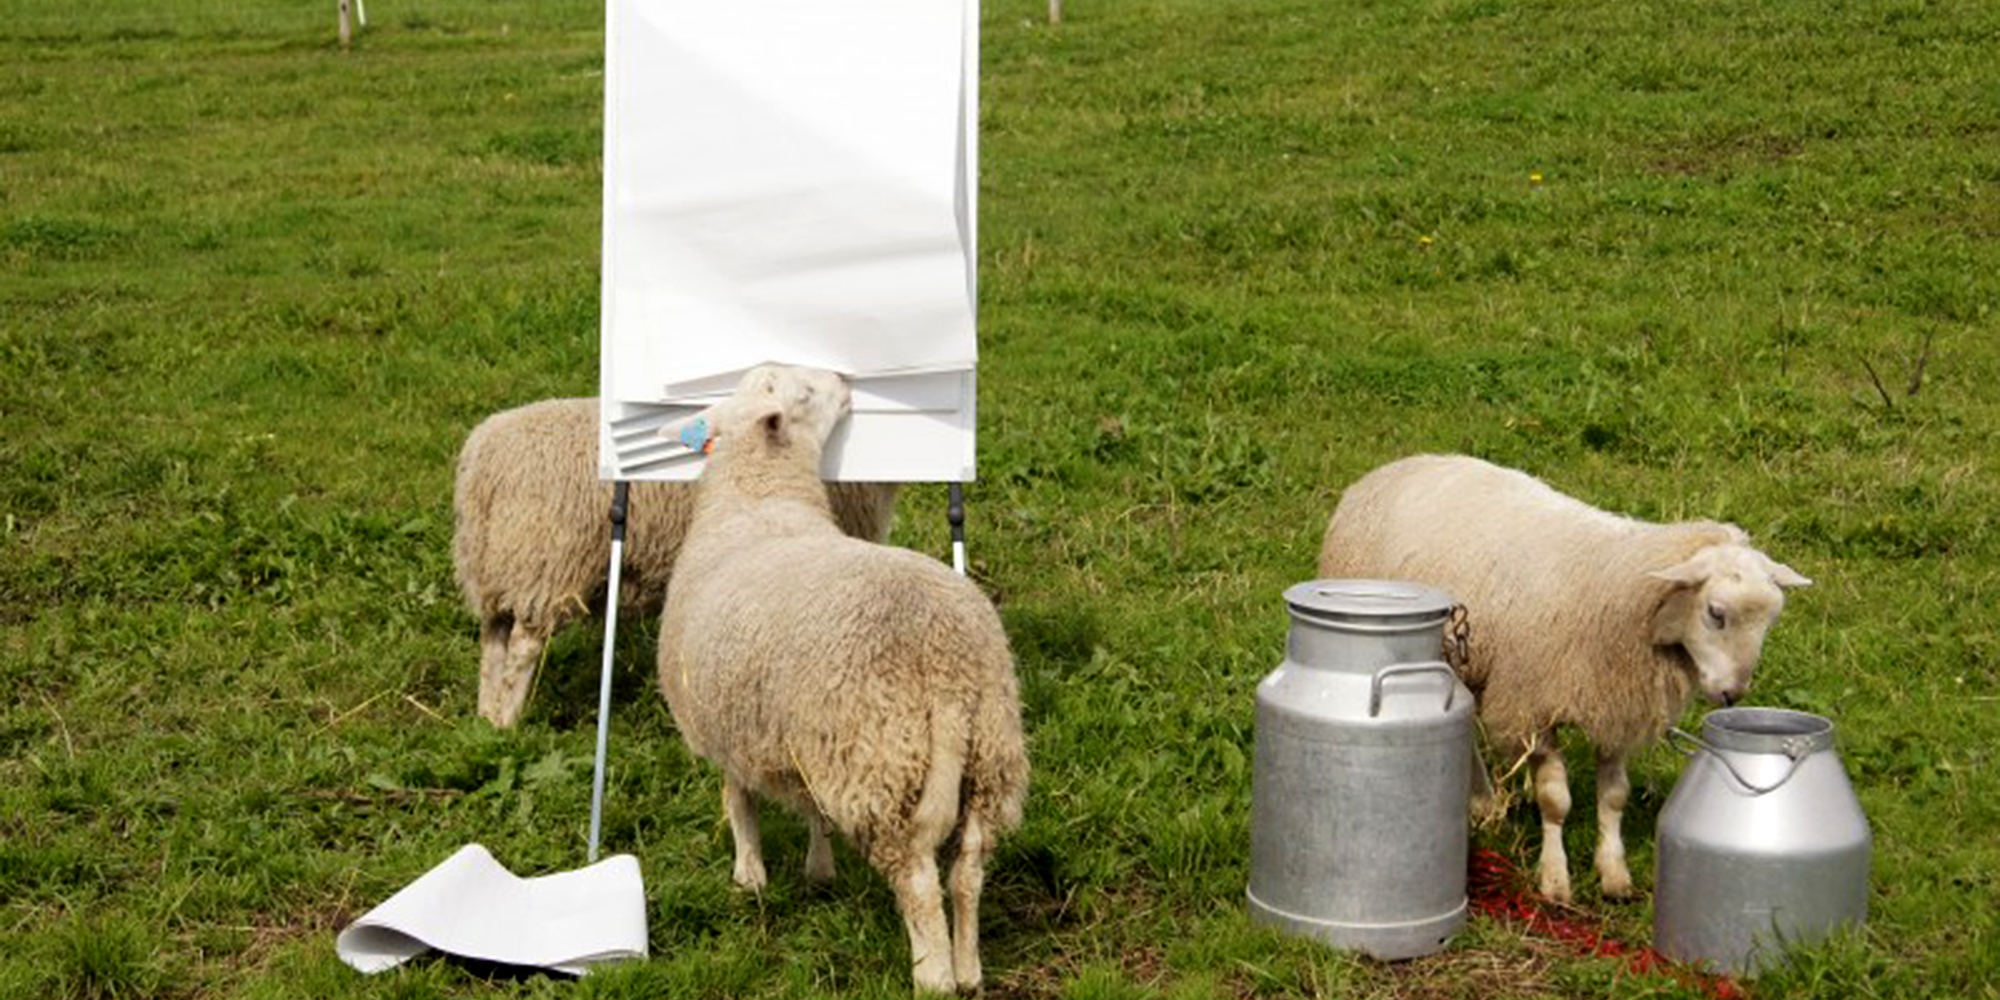 Sheep meeting at Husfrua country farm hotel. Copyright: Husfrua Gårdshotell